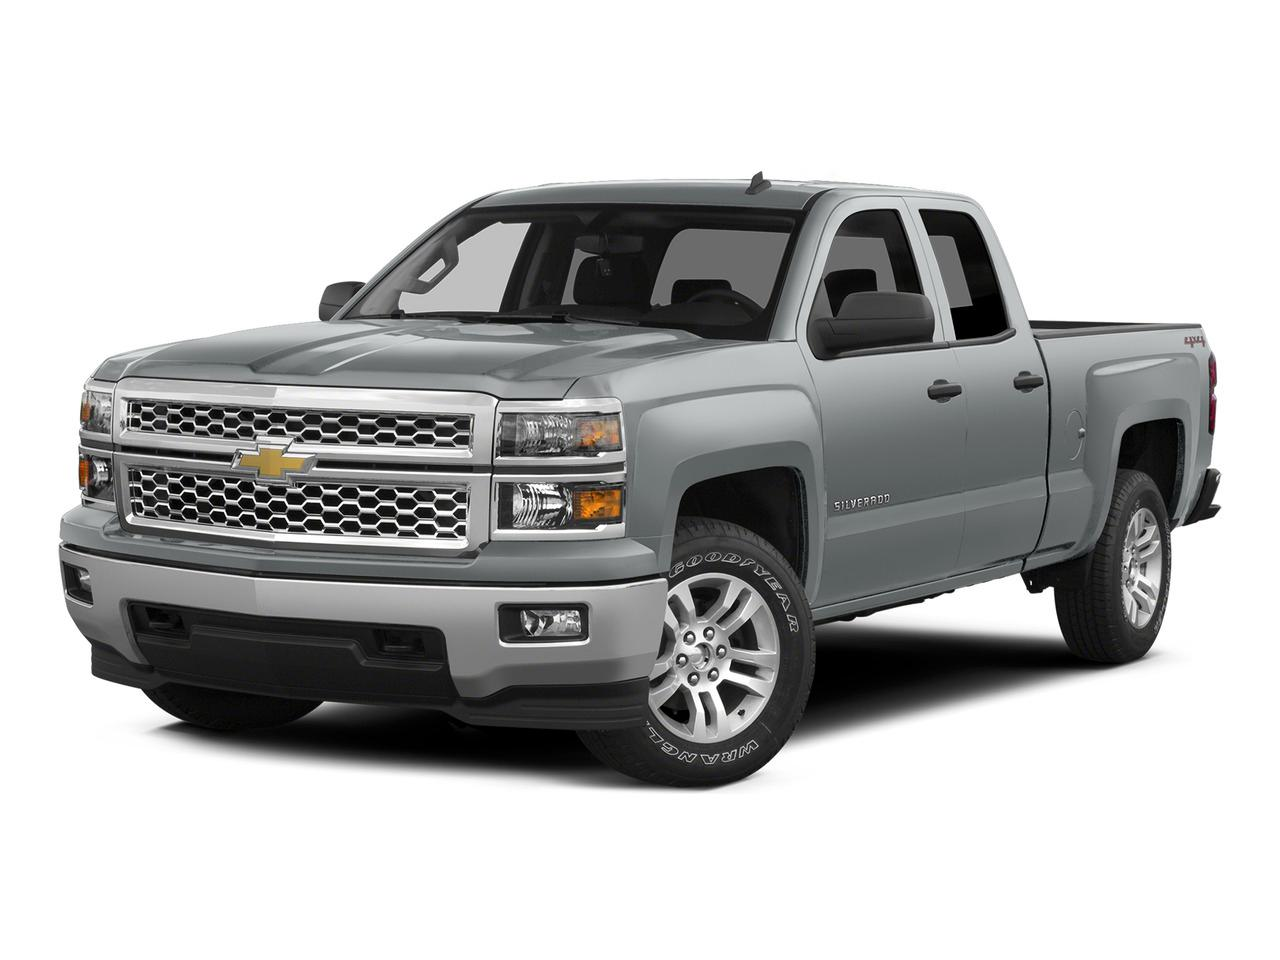 2015 Chevrolet Silverado 1500 Vehicle Photo in Anchorage, AK 99515